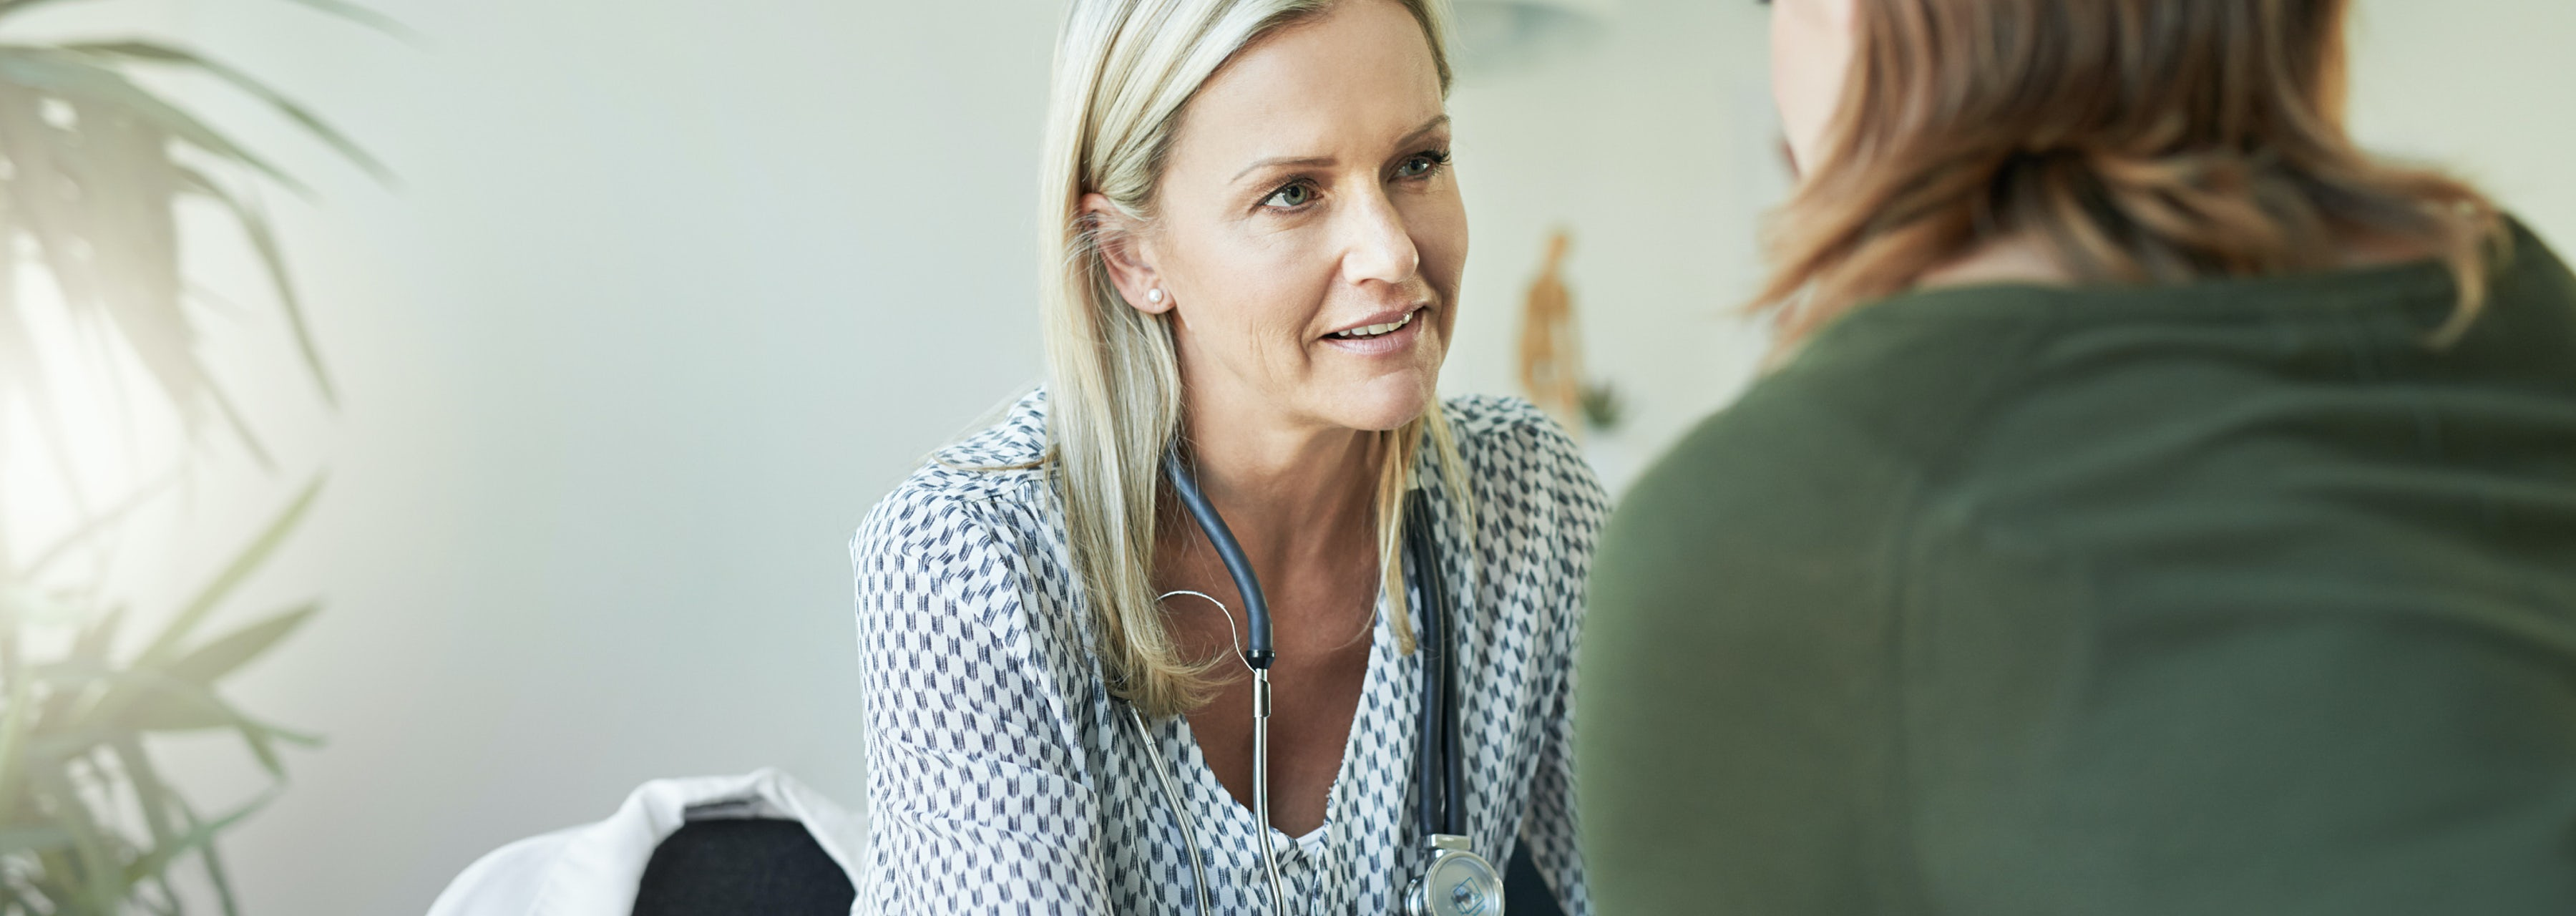 female doctor consulting with female patient about age management and bhrt bioidentical hormone replacement